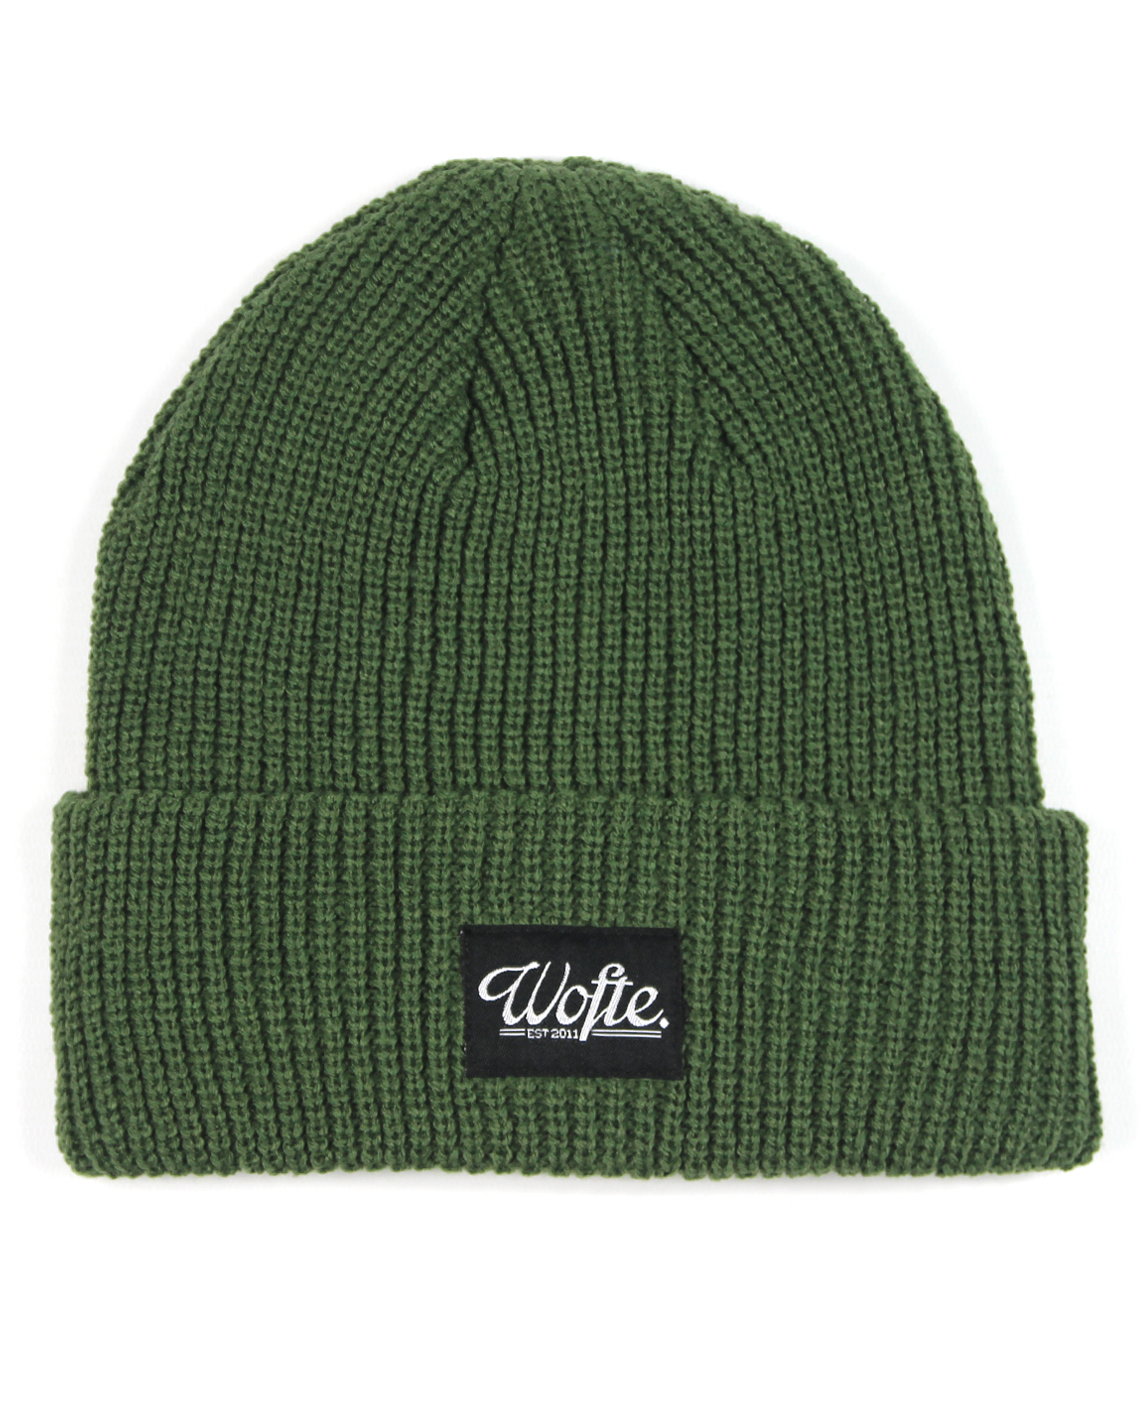 Wofte Clothing Heritage Beanie (Various Colours)